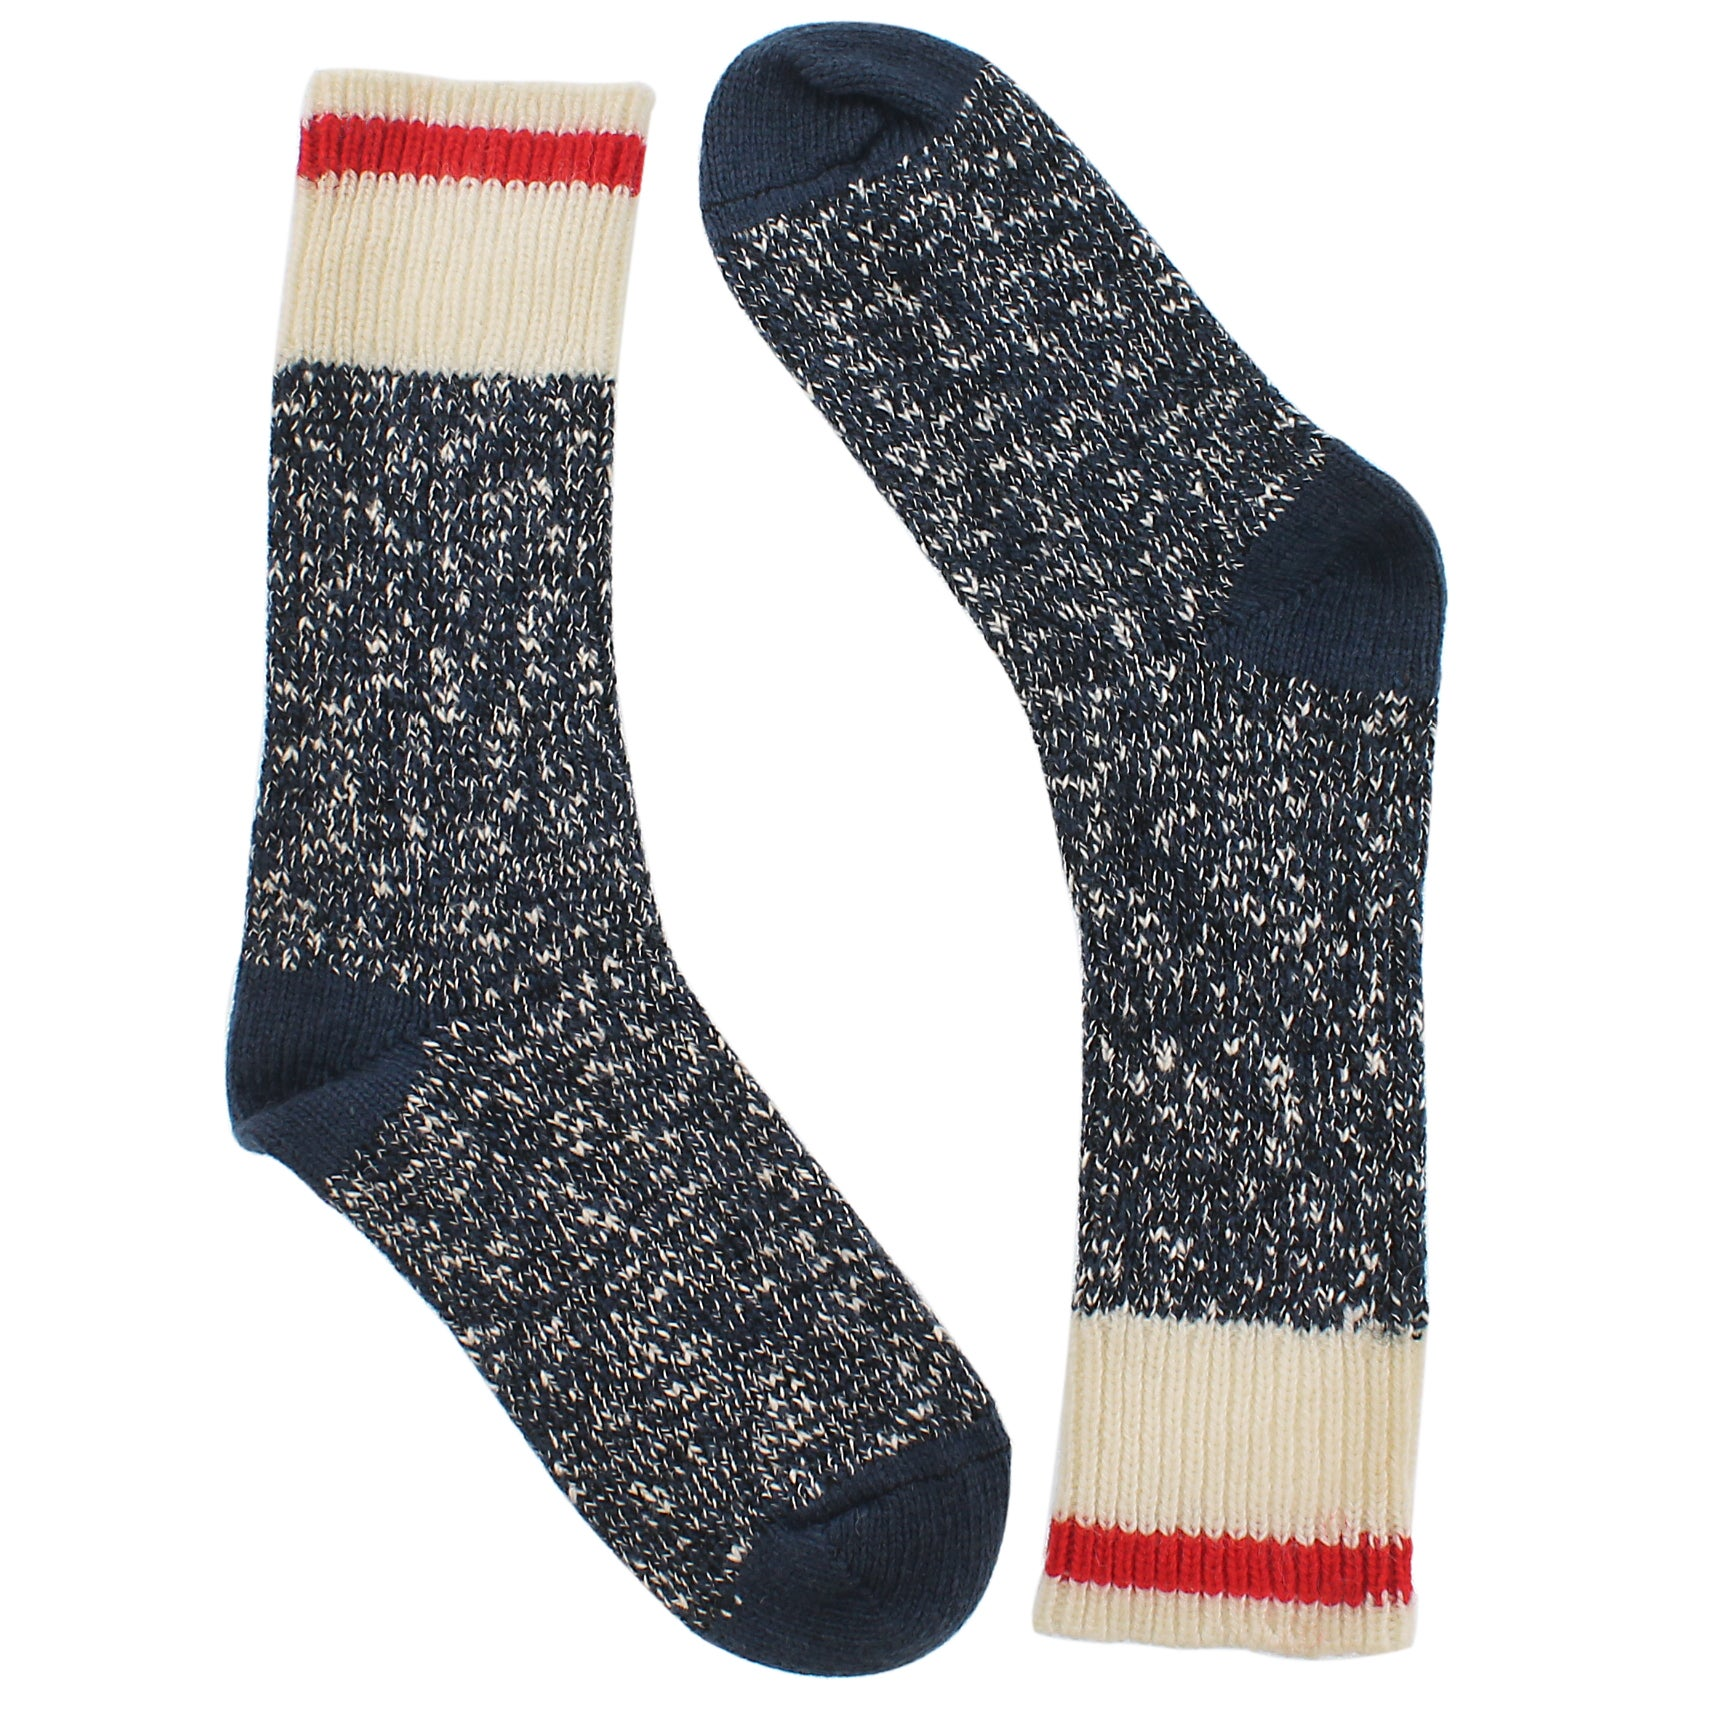 Women's DURAY blue marled work socks